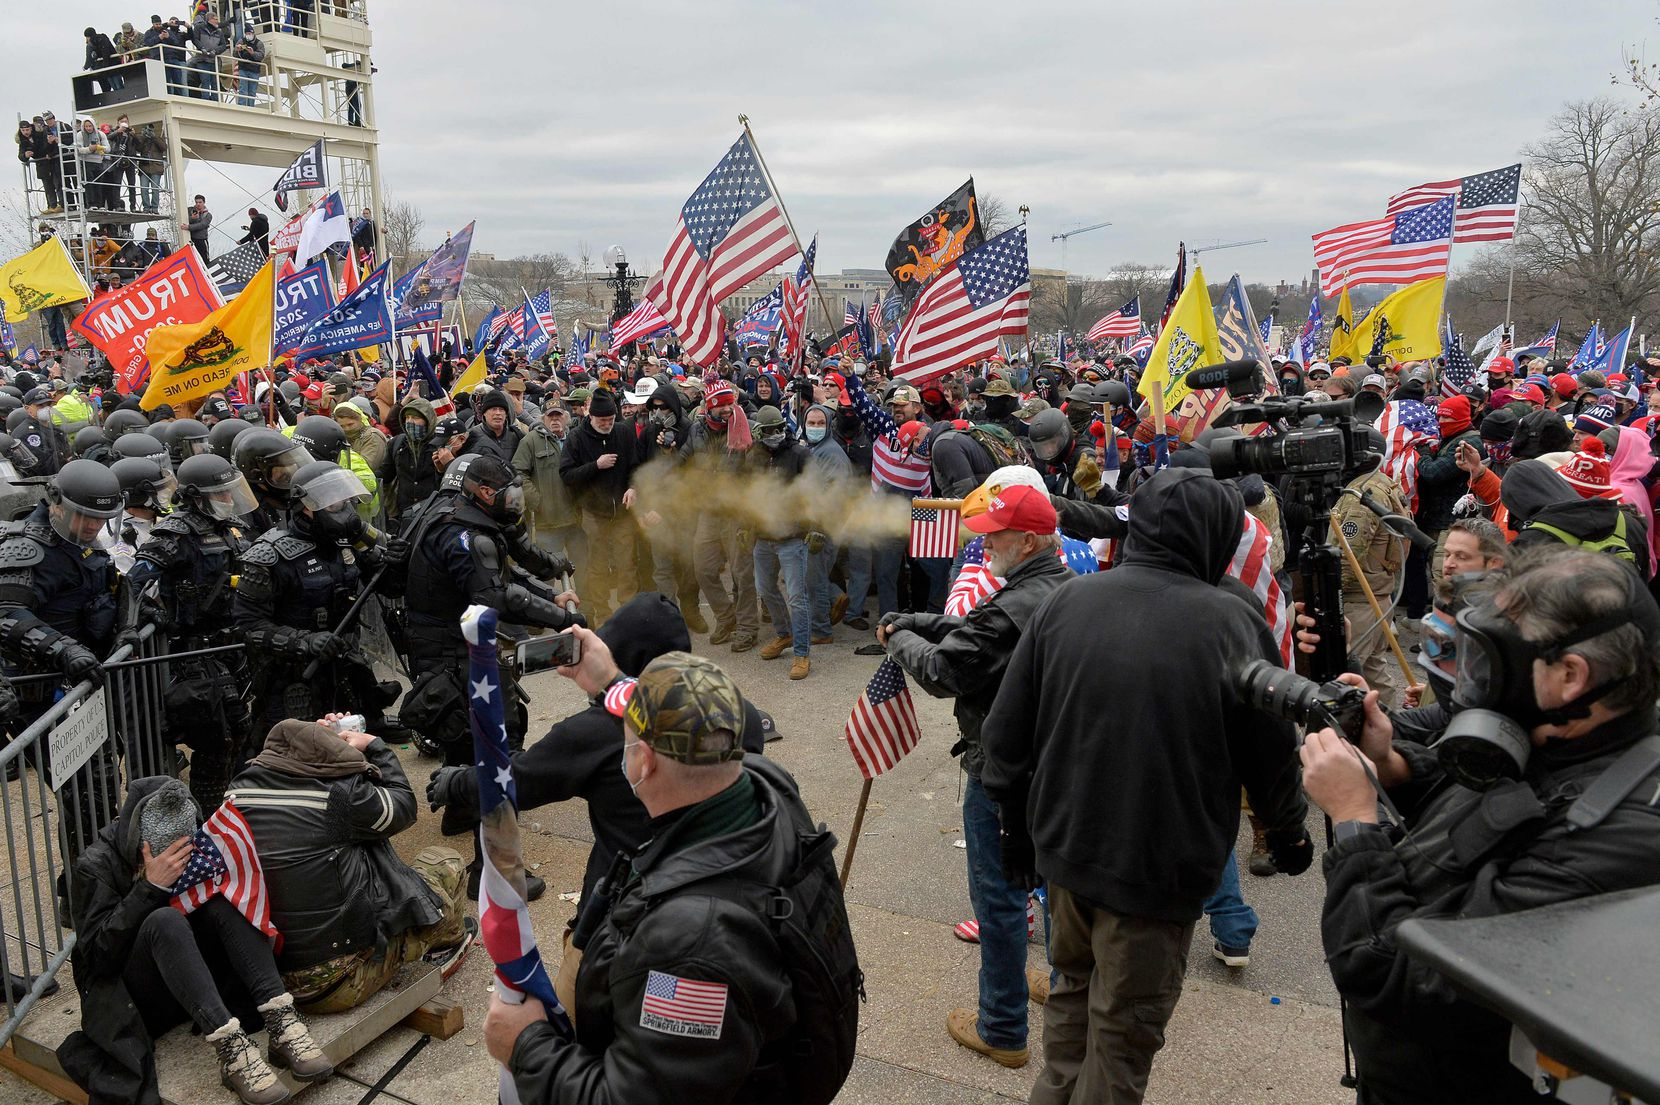 TOPSHOT - Trump supporters clash with police and security forces as they storm the US Capitol in Washington D.C on January 6, 2021. - Demonstrators breeched security and entered the Capitol as Congress debated the a 2020 presidential election Electoral Vote Certification. (Photo by Joseph Prezioso / AFP) (Photo by JOSEPH PREZIOSO/AFP via Getty Images)